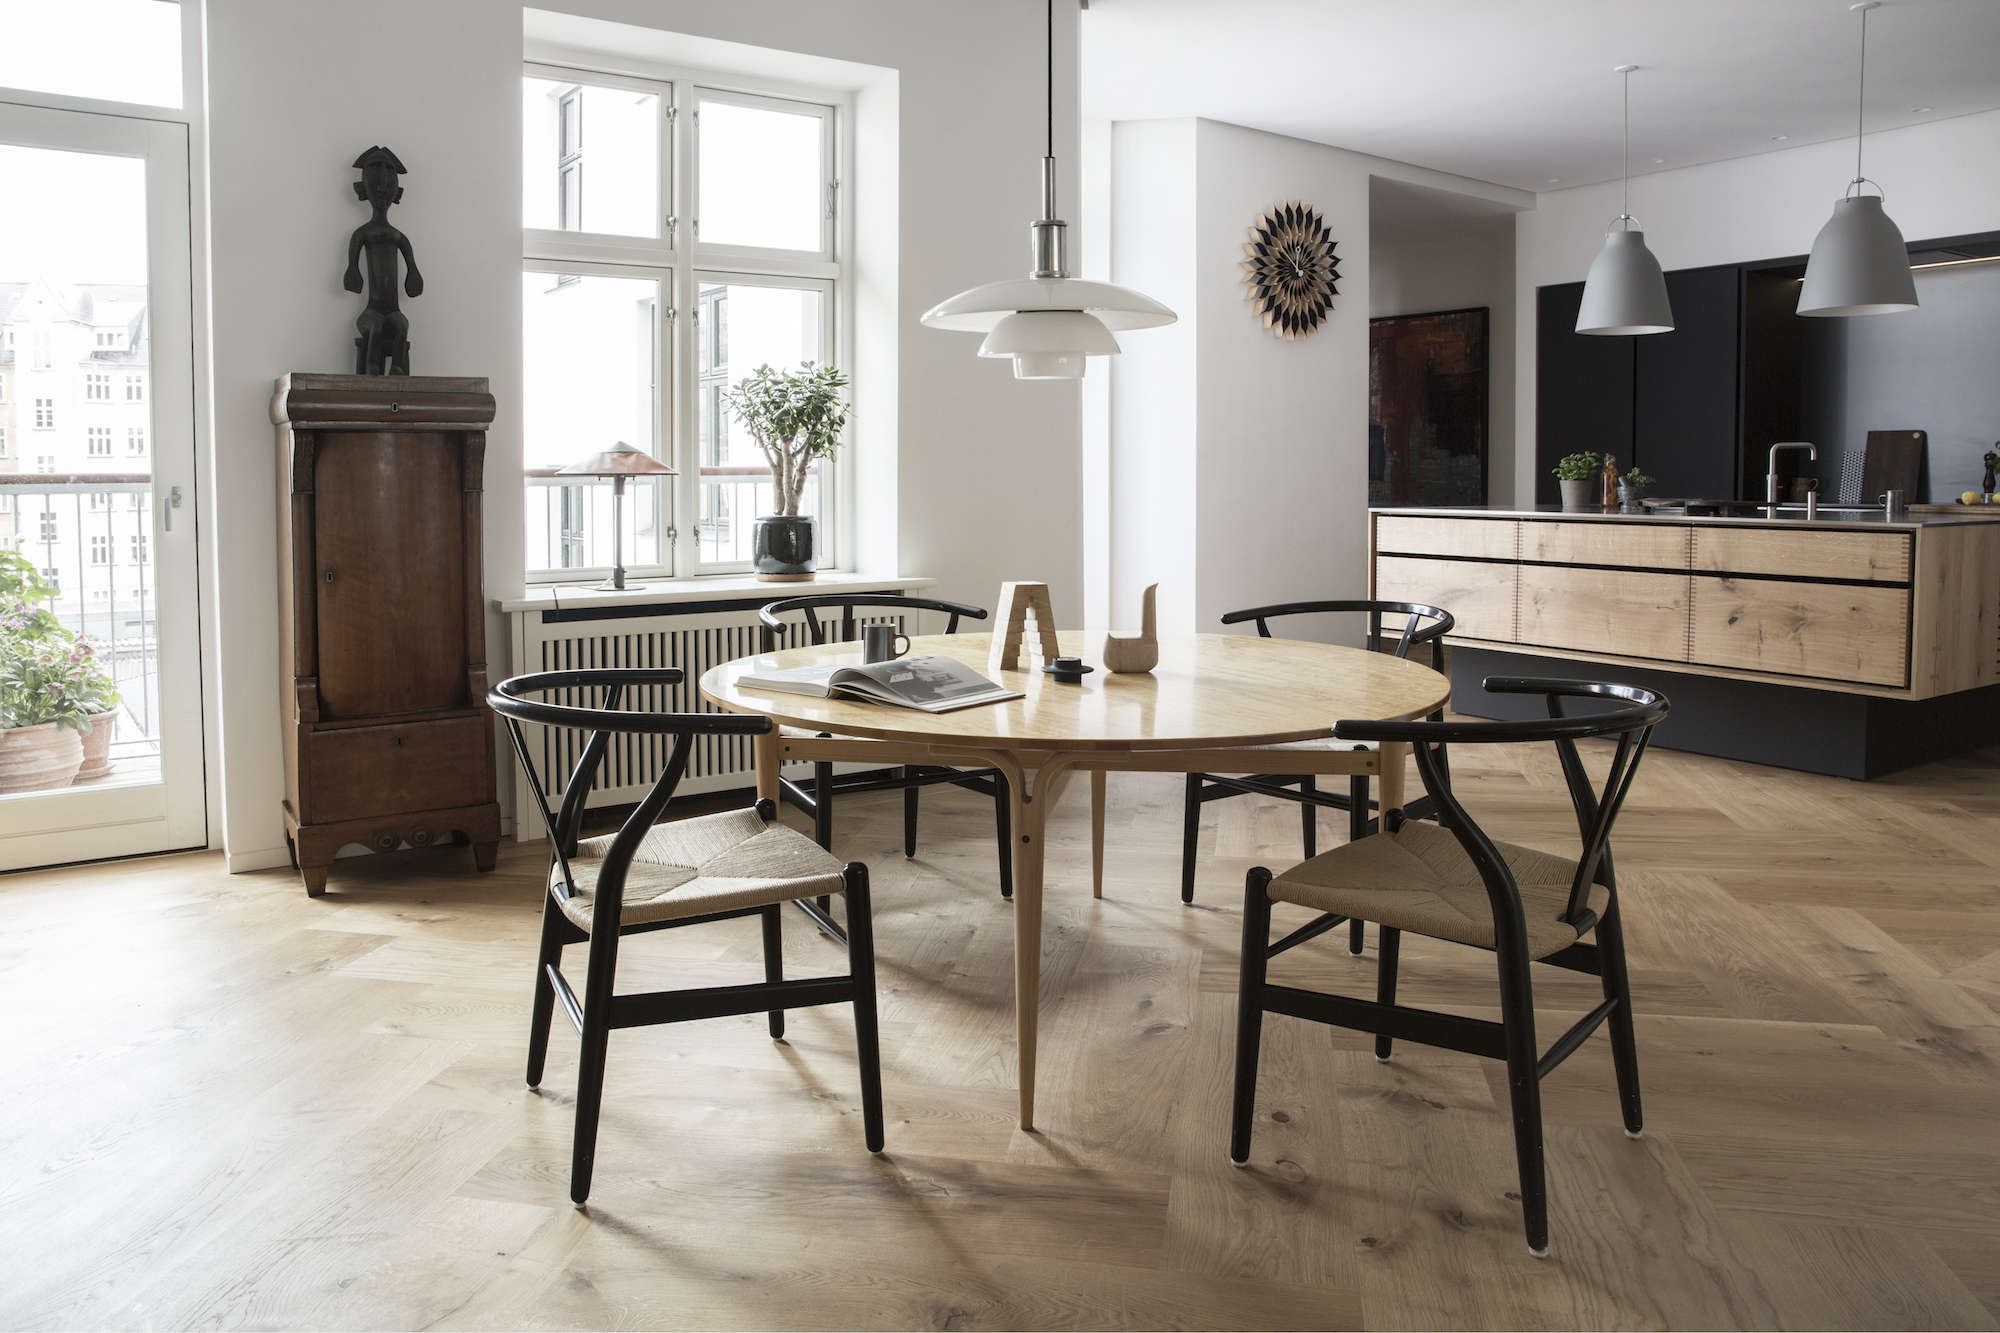 dining-room-wishbone-chairs-denmark-garde-Hvalsoe